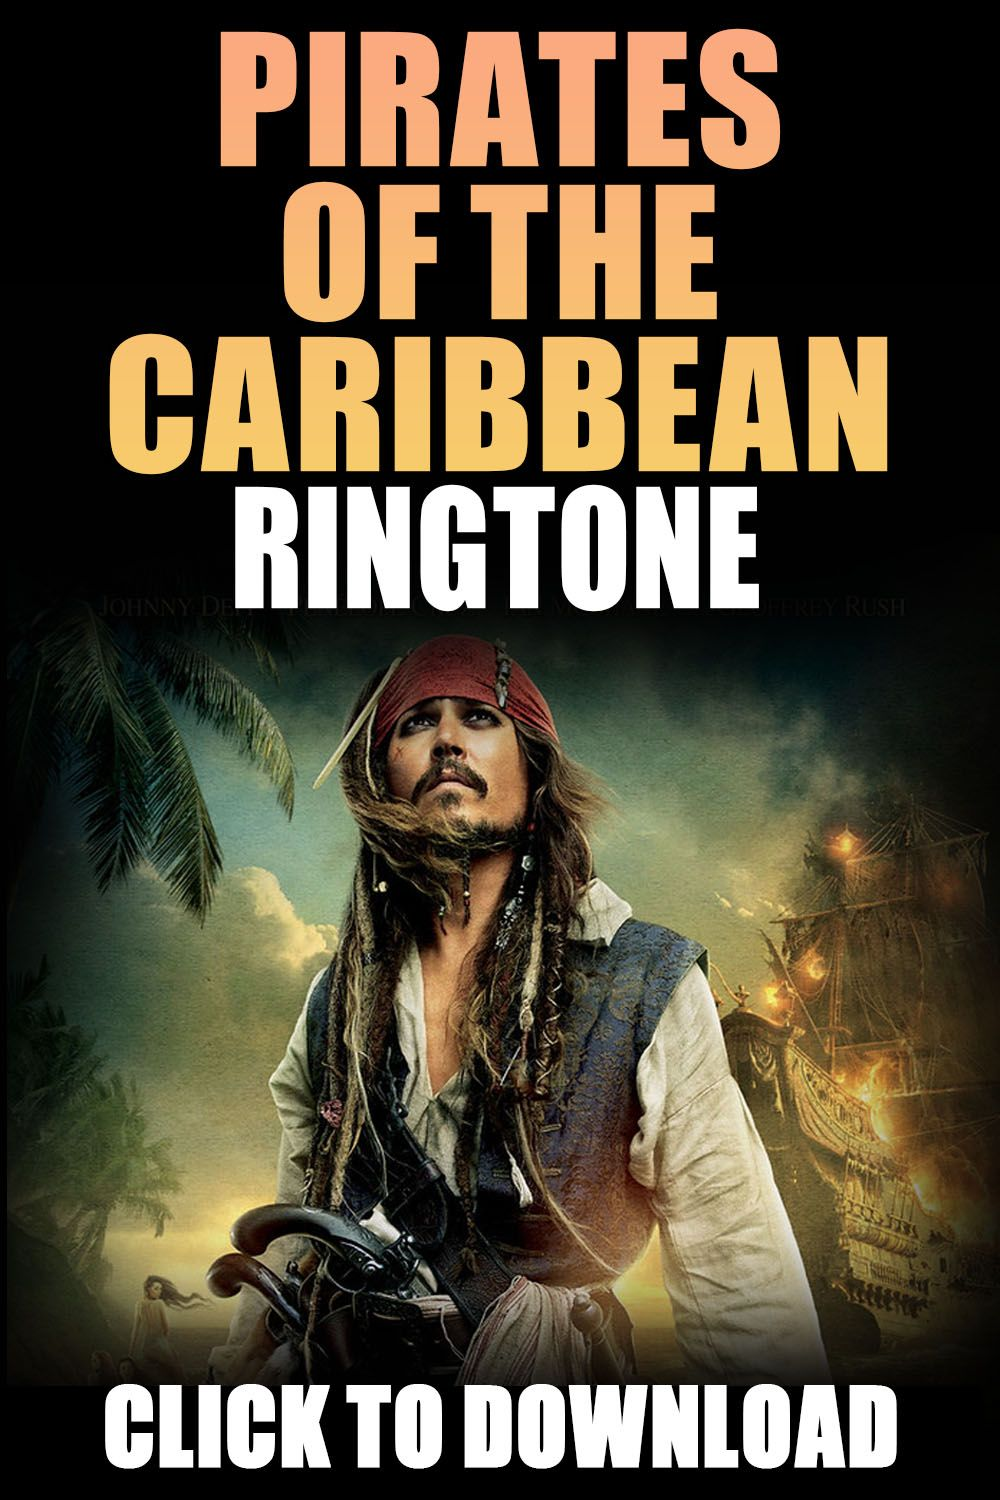 Pirates Of The Caribbean Ringtone For Your Iphone In 2020 Pirates Of The Caribbean Caribbean Pirates